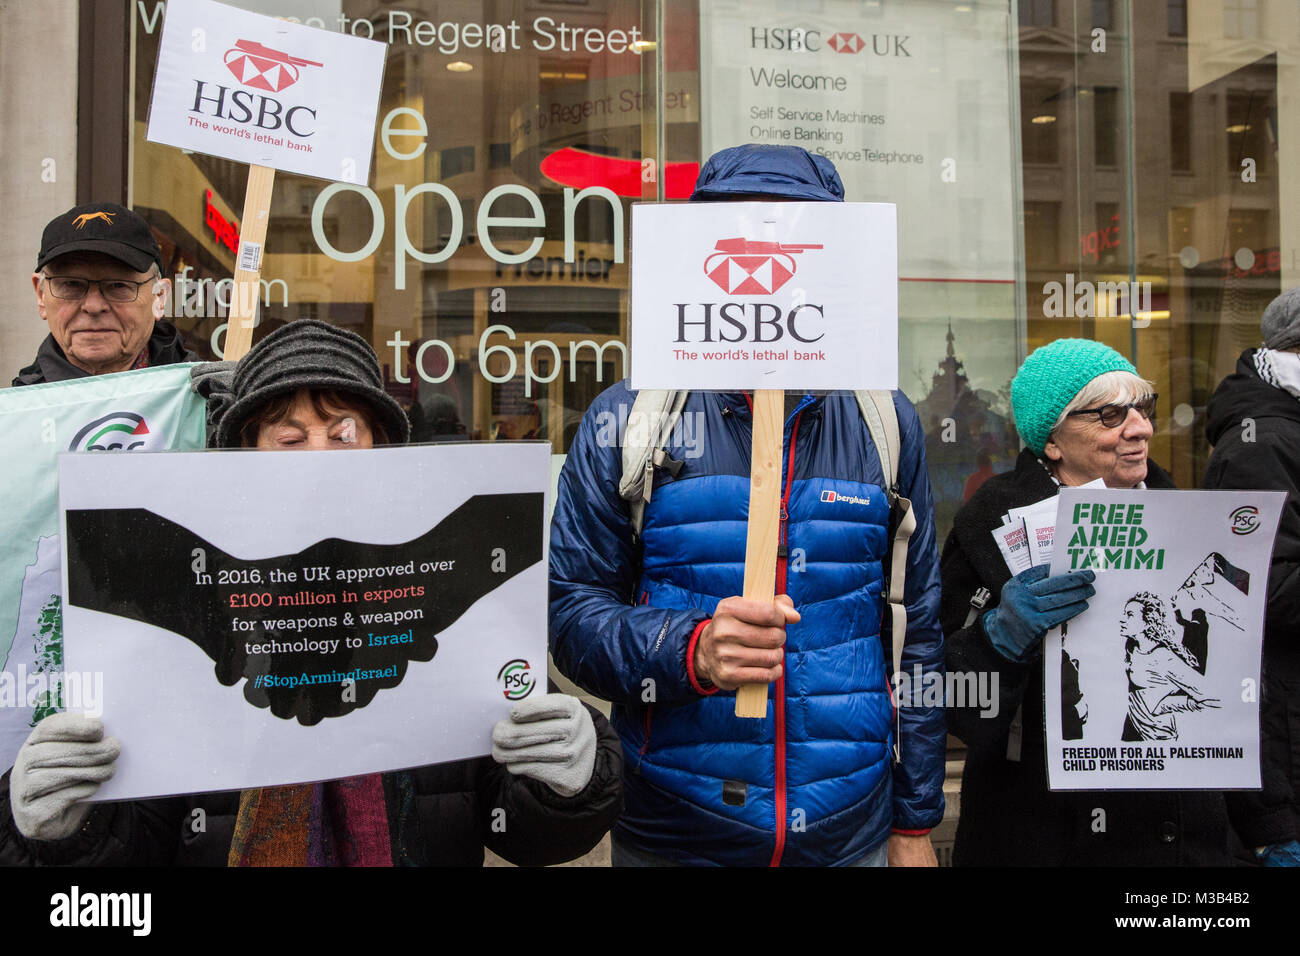 London, UK. 10th February, 2018. Campaigners from Palestine Solidarity Campaign protest outside a branch of HSBC - Stock Image